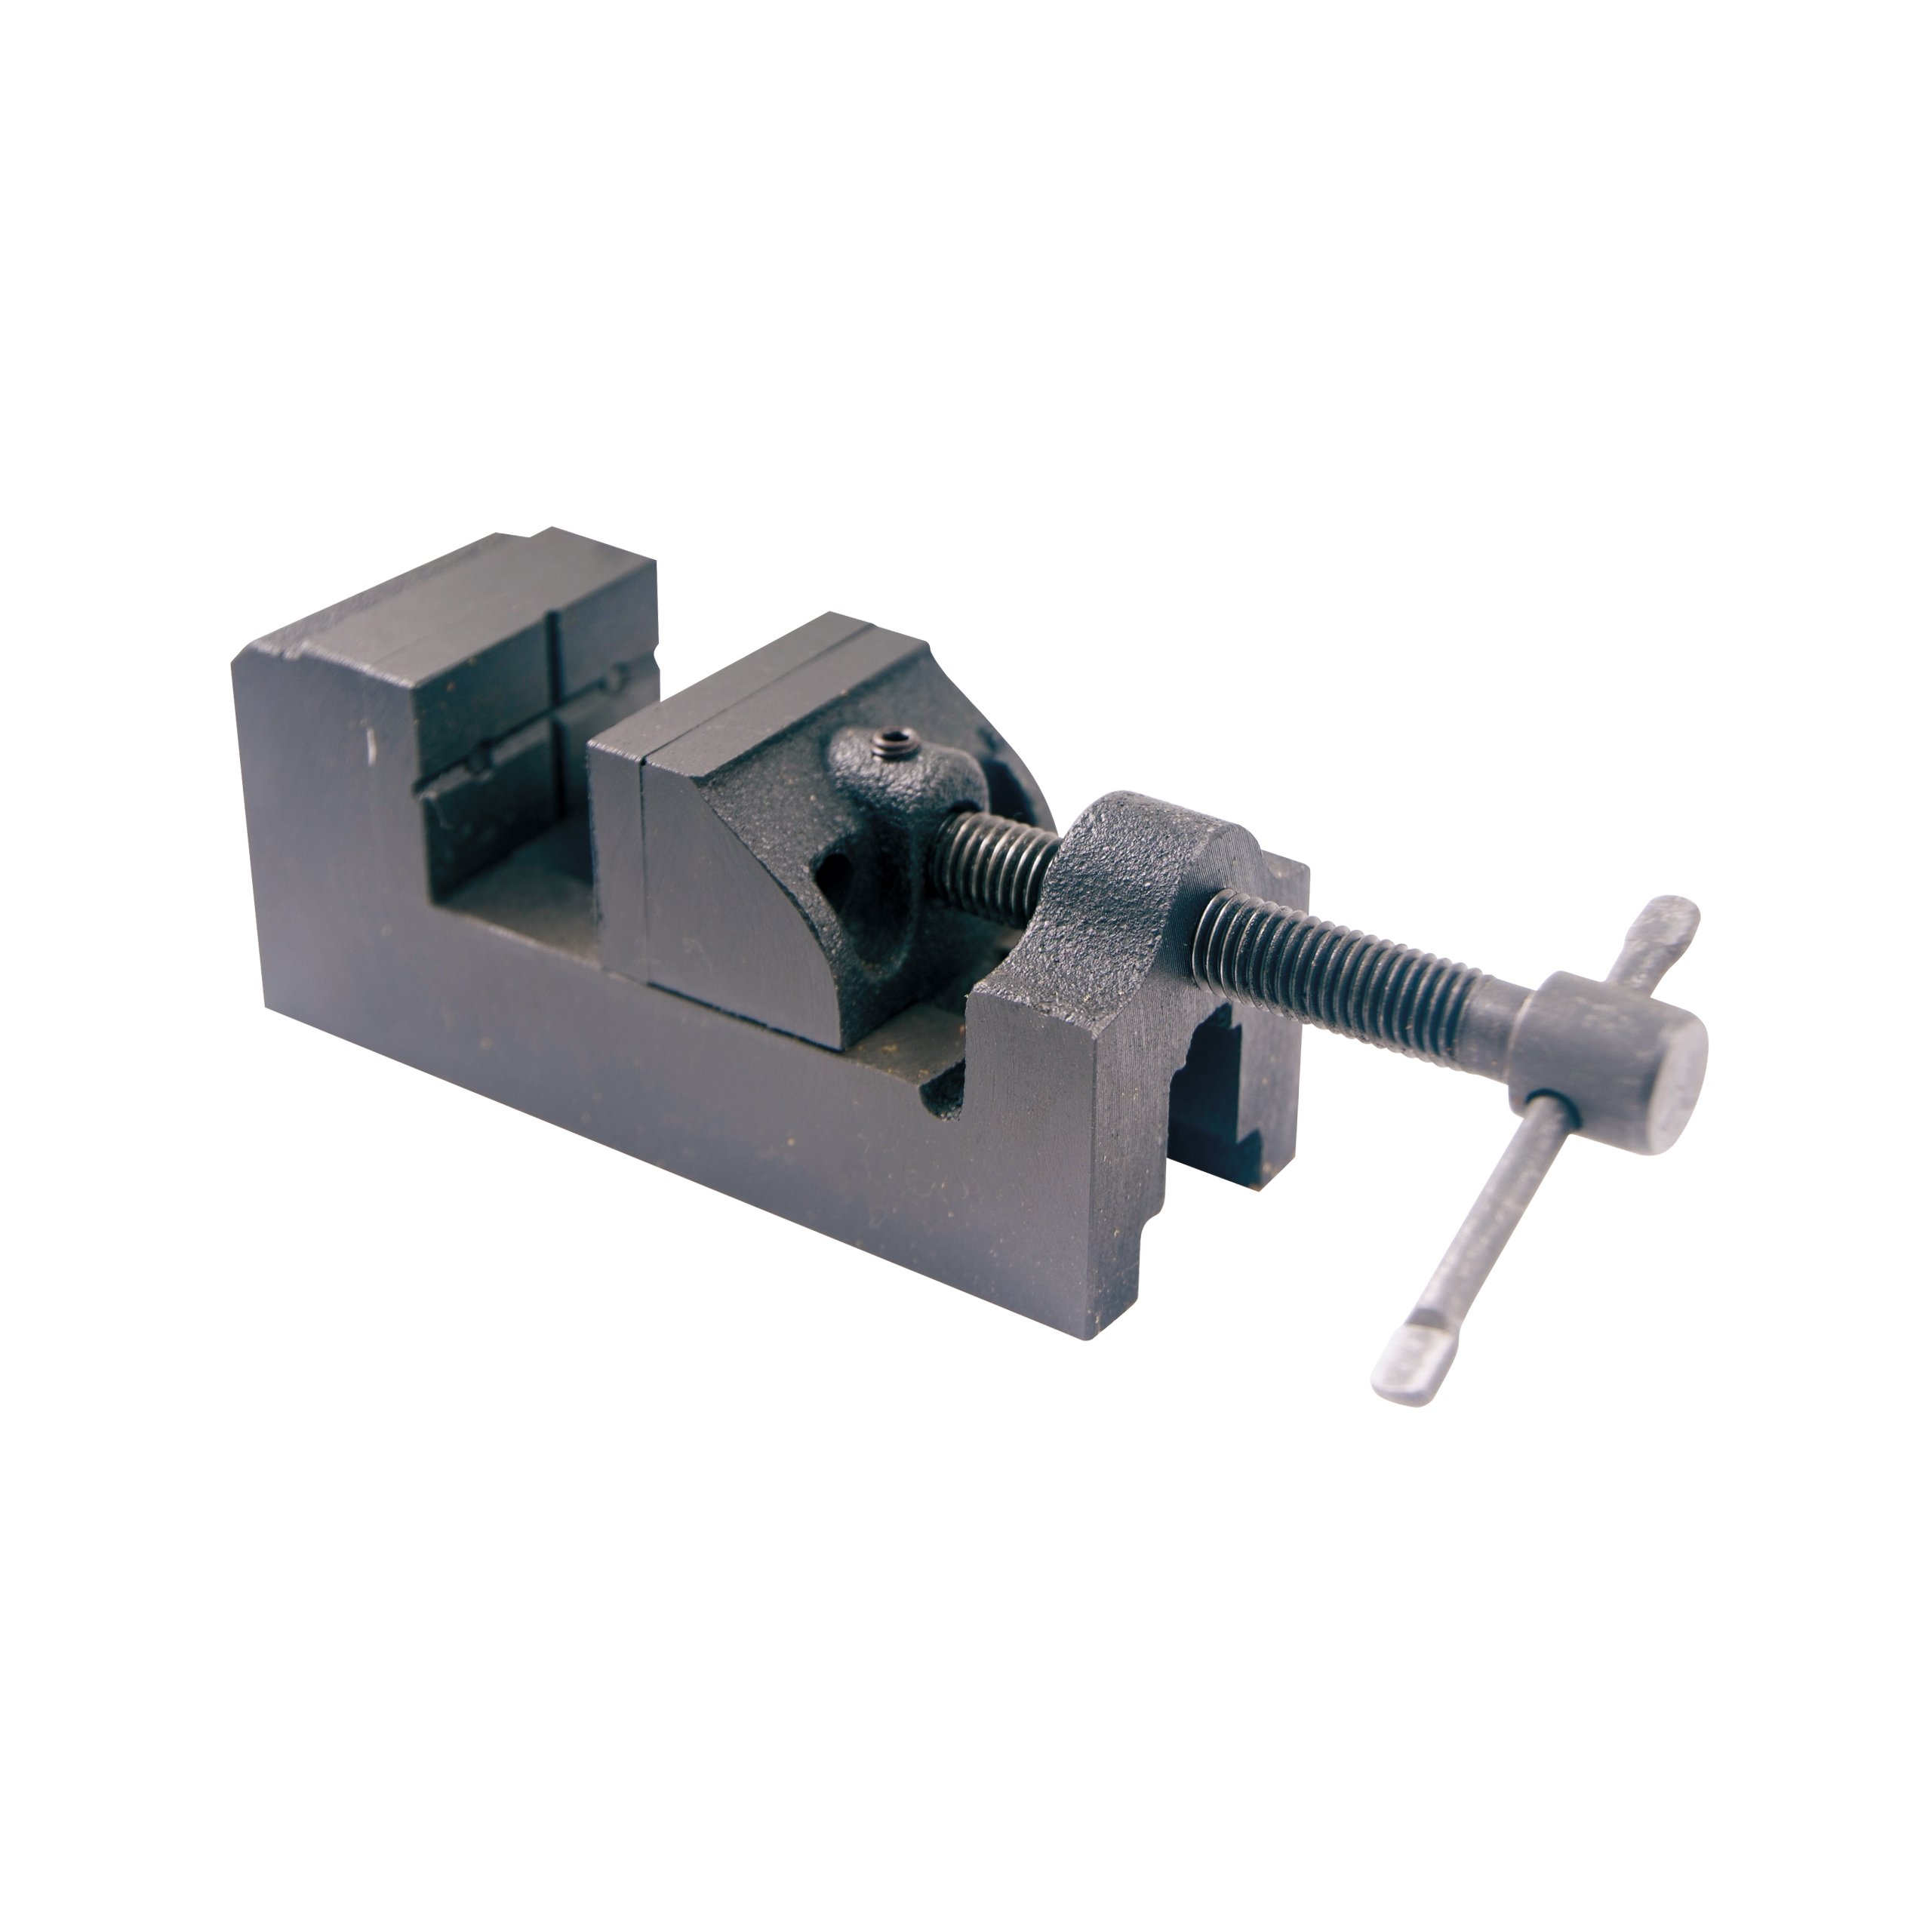 """HHIP 3900-1731 Grooved Jaw Drill Press Vise, 2.5"""" Width x 1.5"""" Depth Jaw, 2.5"""" Jaw Opening (Pack of 1)"""